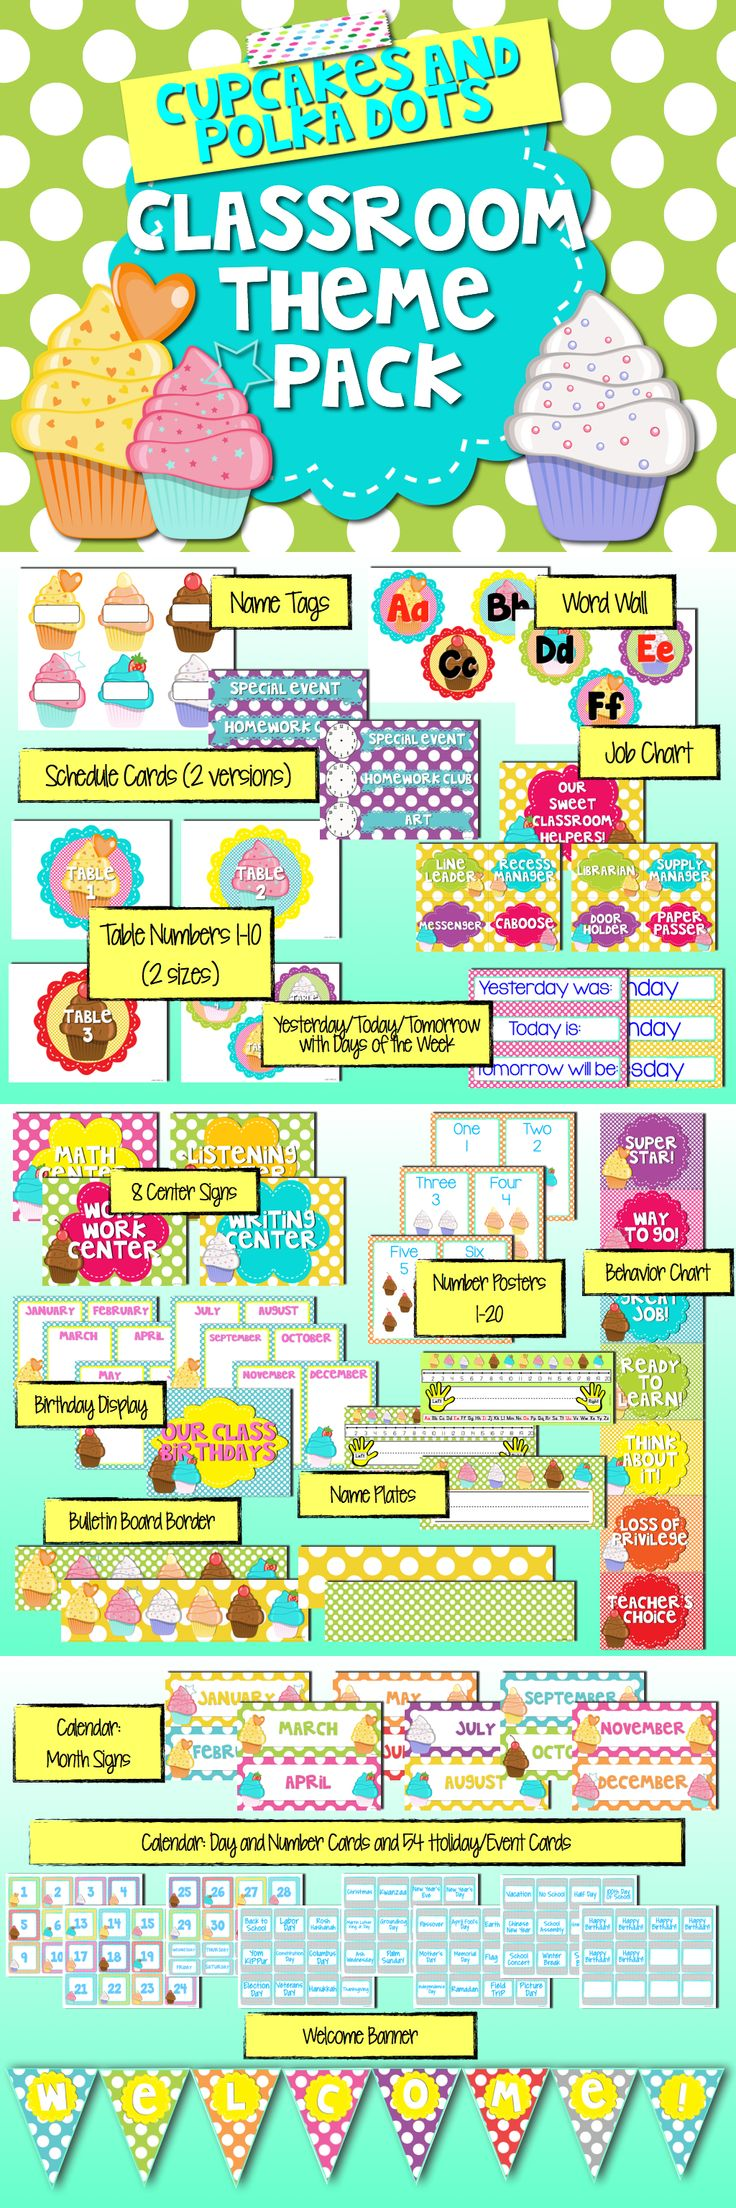 Polka Dots and Cupcakes Classroom Theme Pack...includes table numbers, name tags/plates, word wall letters, banners, birthday display, behavior chart and more - everything you need to decorate the cutest classroom ever! $